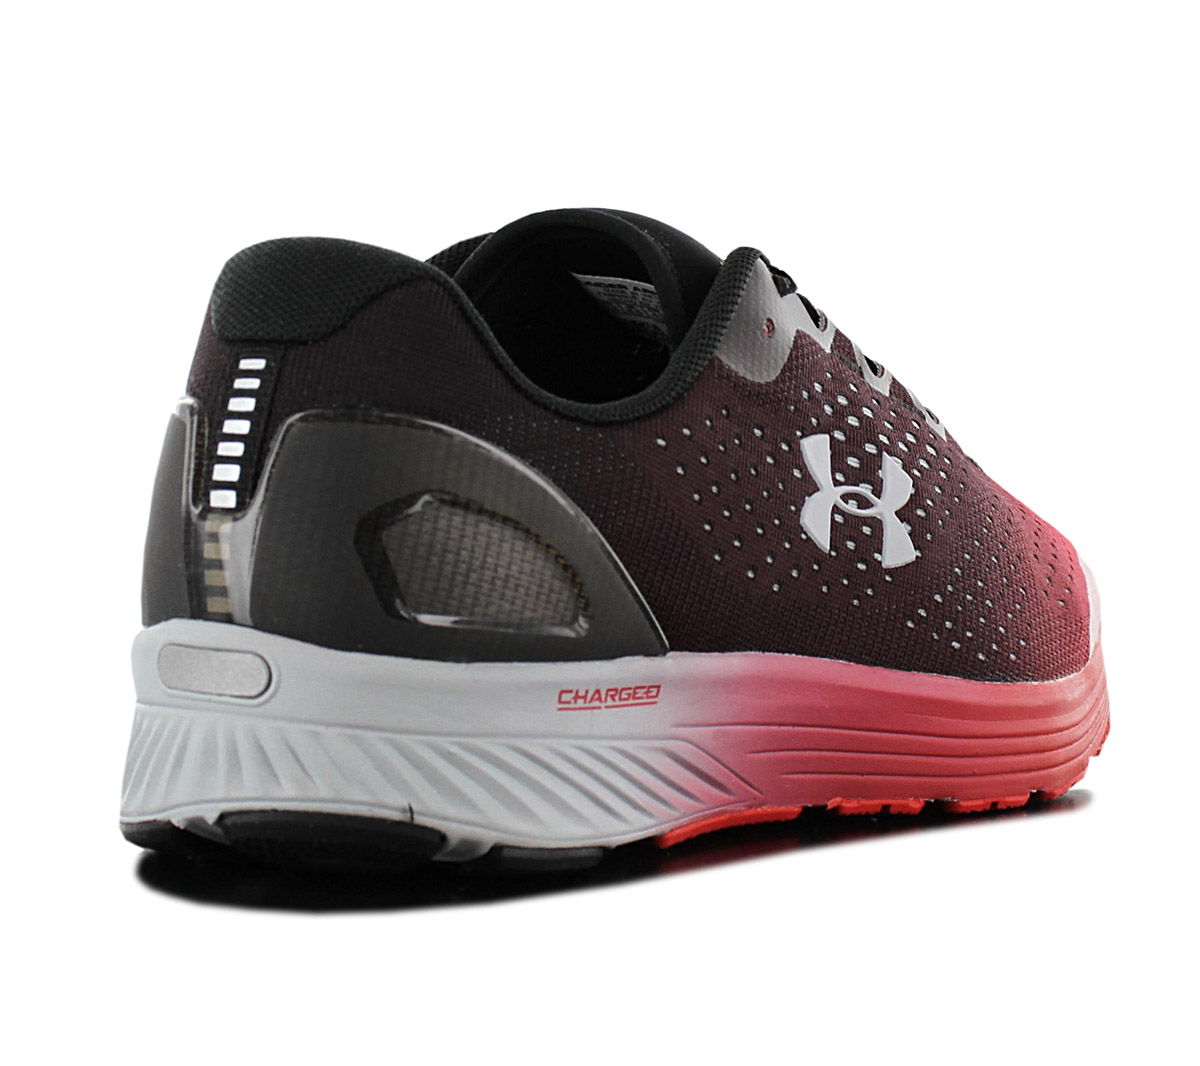 Details about UA Under Armour Charged Bandit 4 Mens Trainer 3020319 005 Sports Fitness Shoes show original title